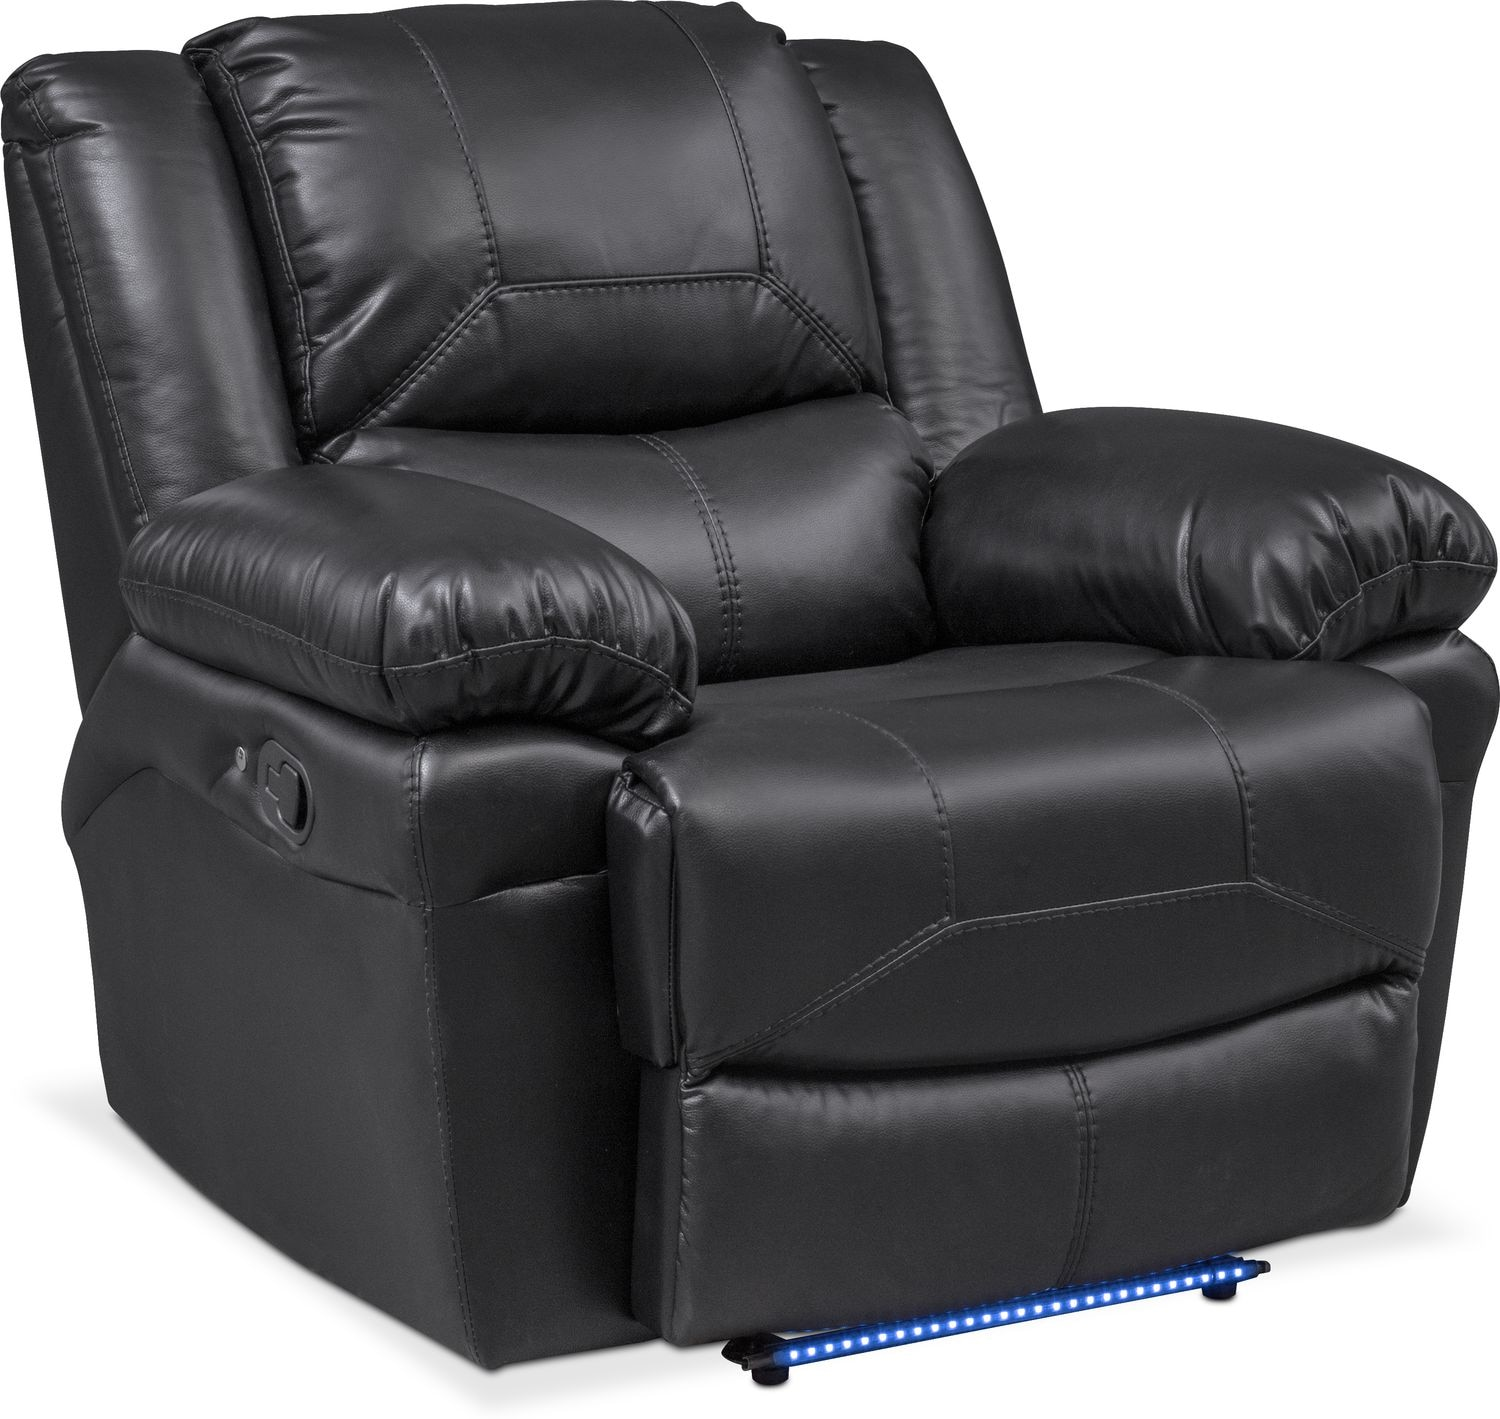 Living Room Furniture - Monza Manual Recliner